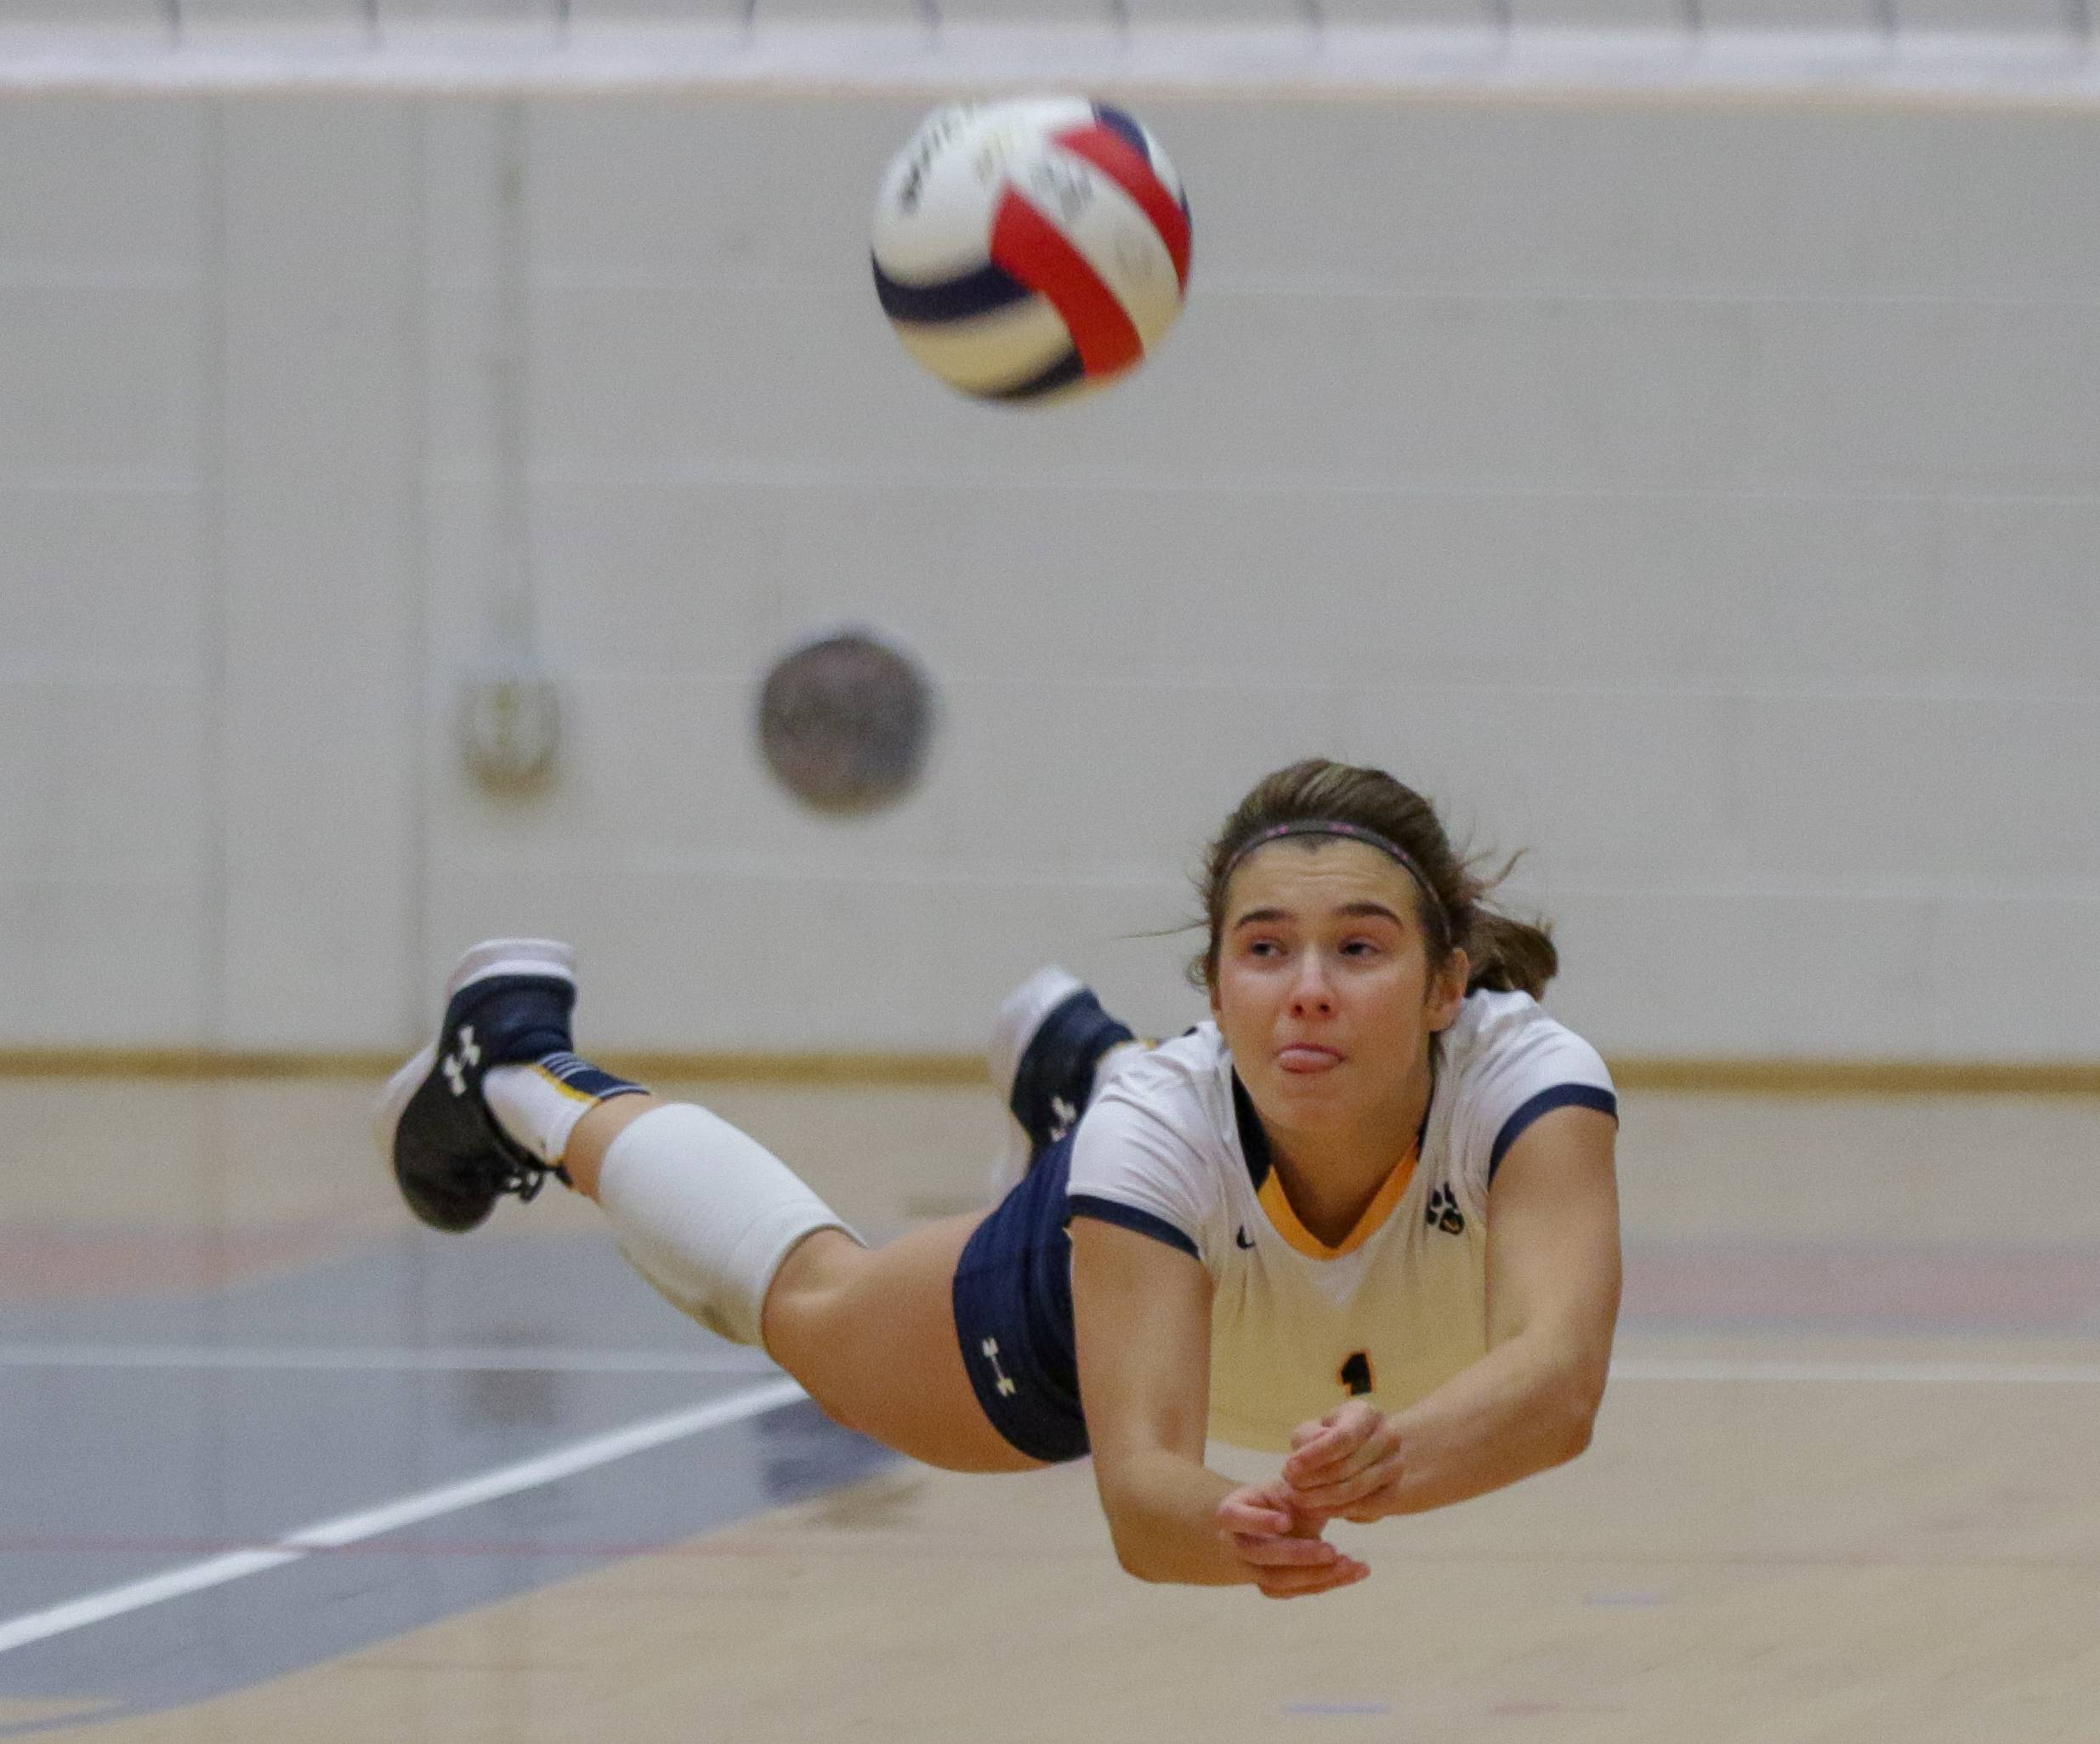 Neuqua Valley's Bailey Houlihan dives for a ball in action against Glenbard South during girls volleyball on Thursday in Glen Ellyn.